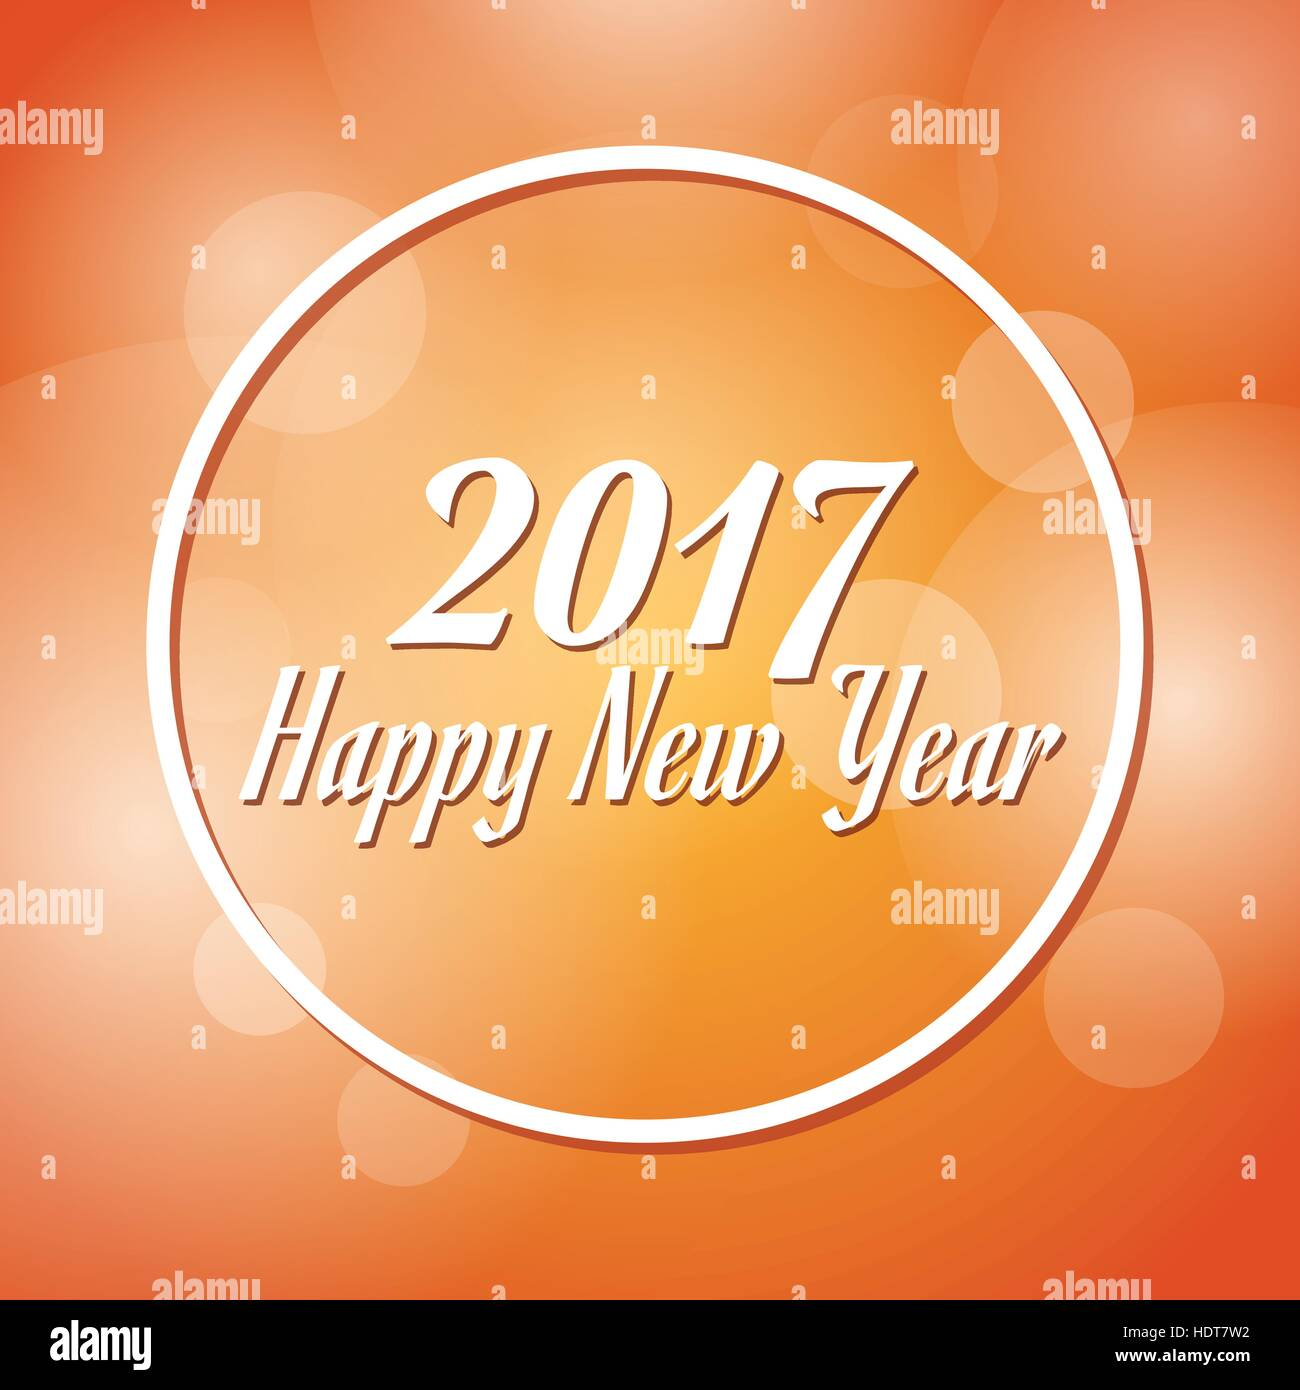 happy new year 2017 greeting card blurred background - Stock Vector